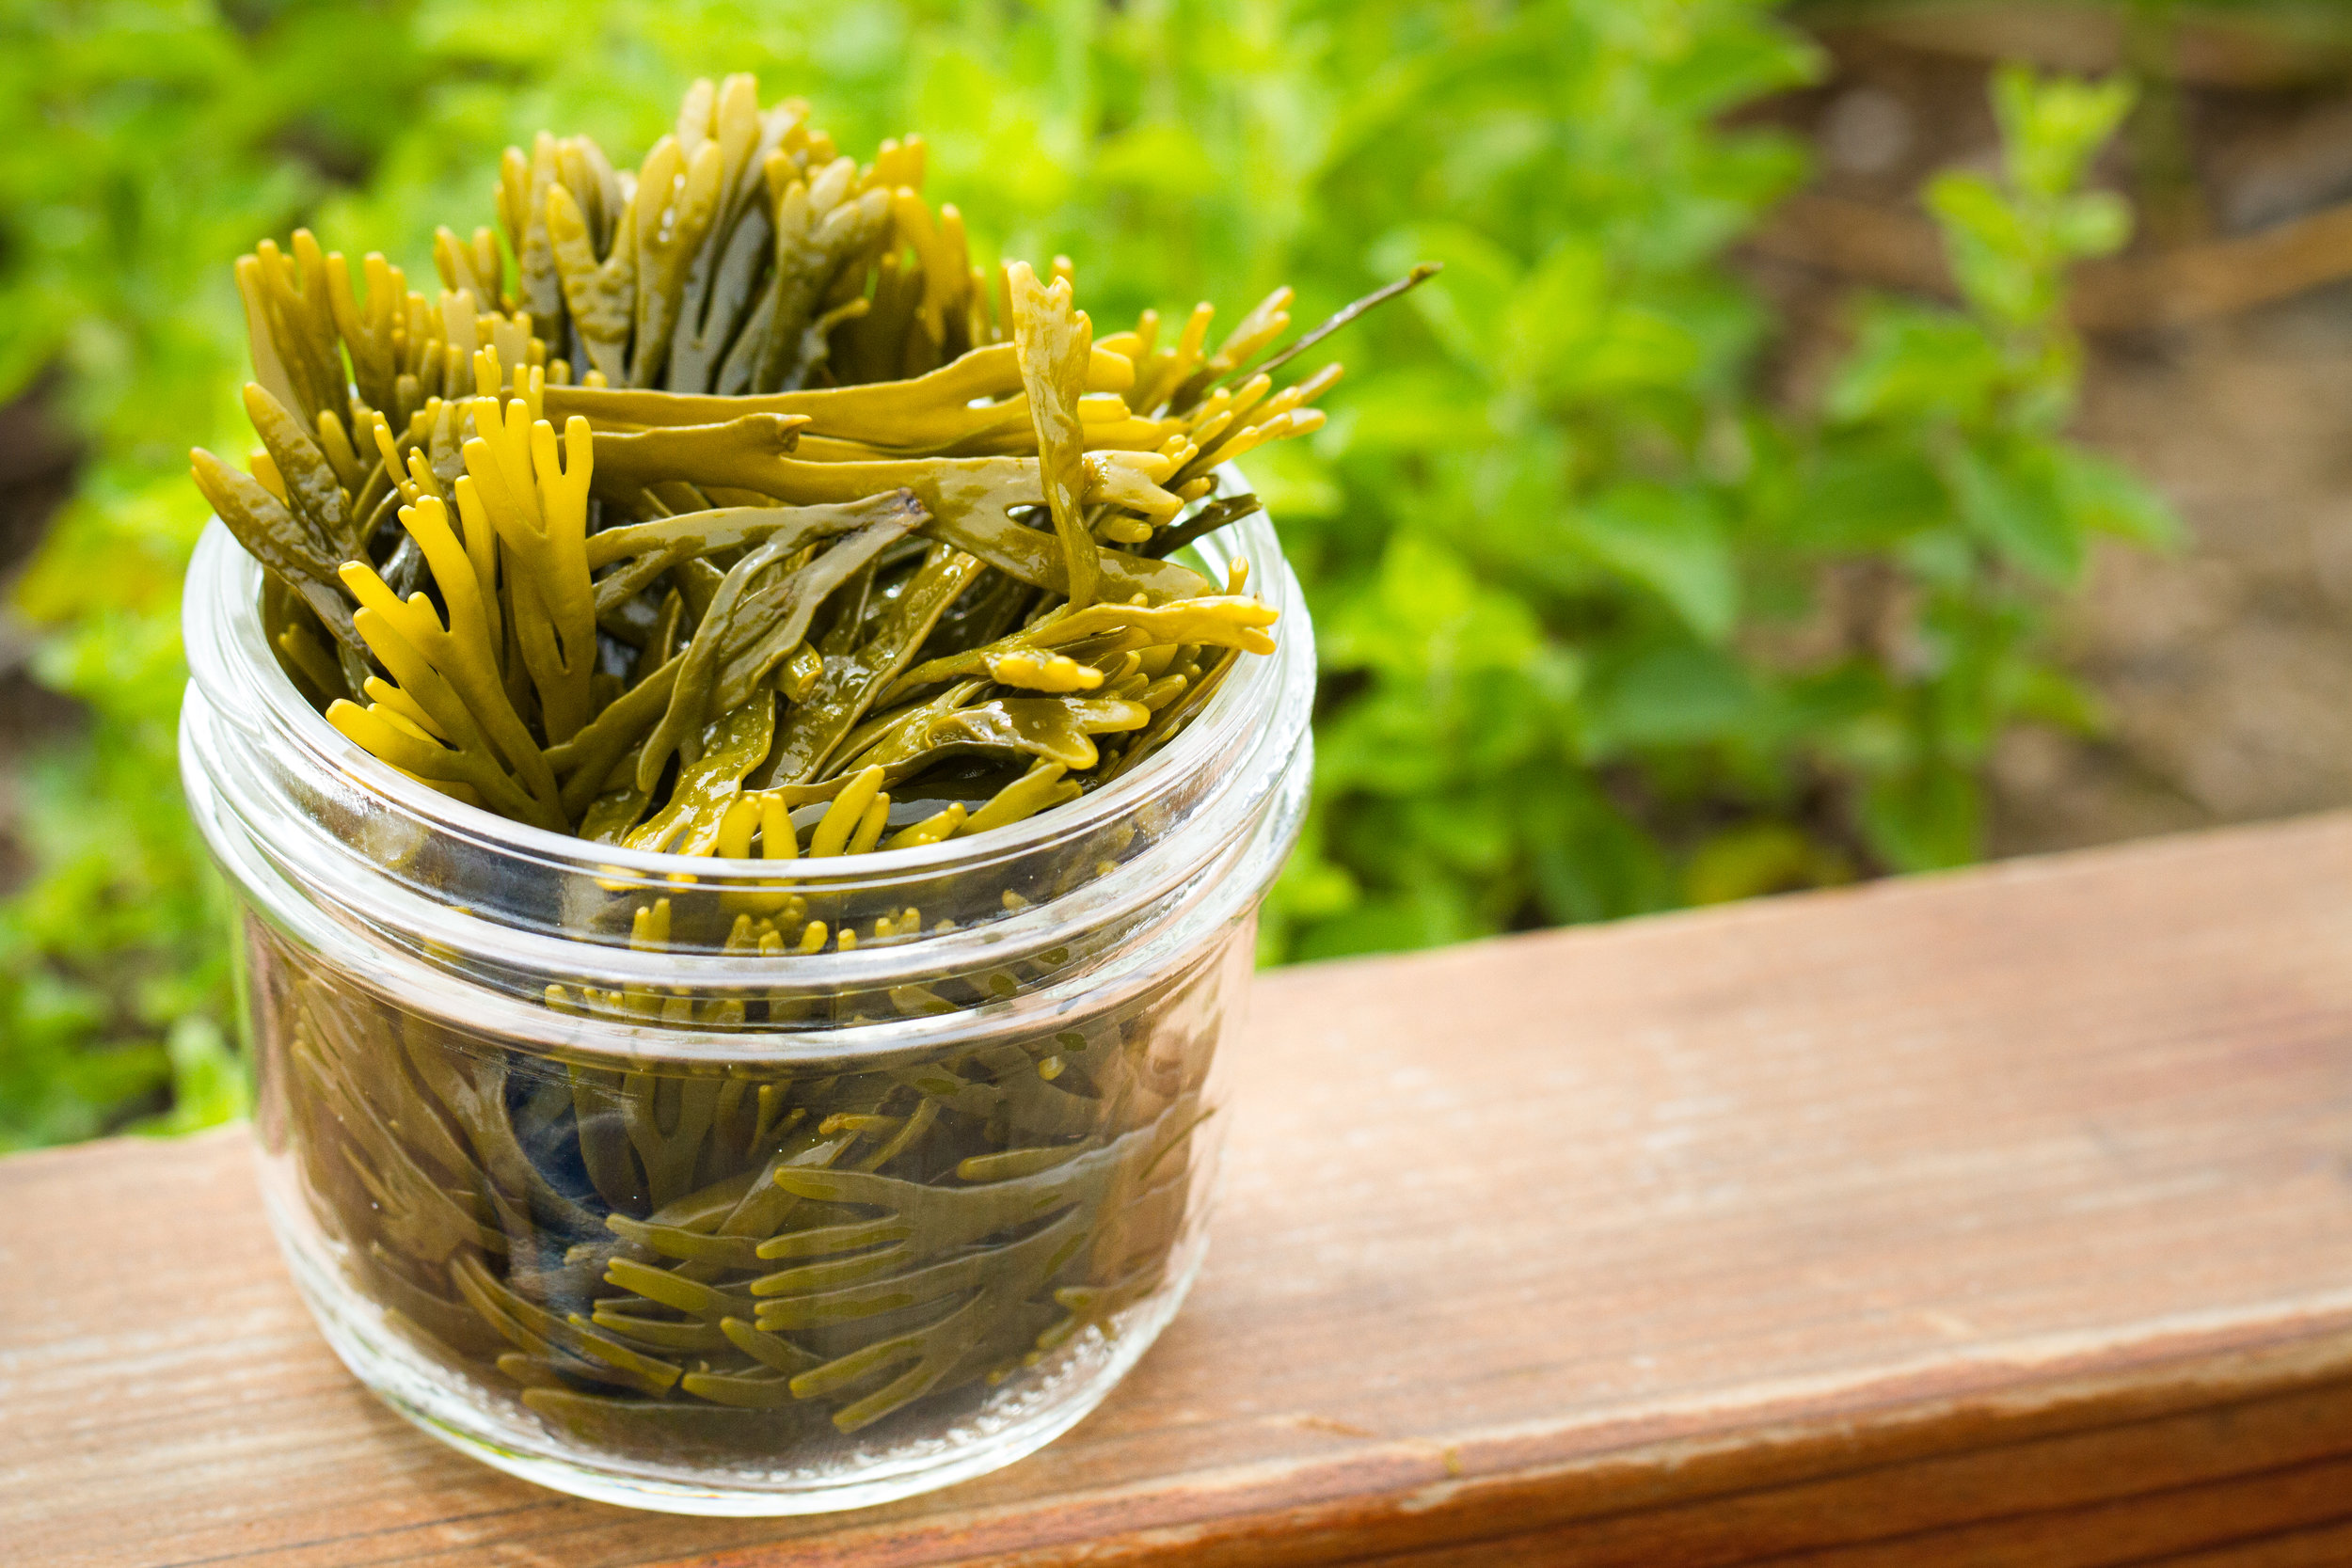 Dwarf Rockweed (Pelvetiopsis limitata) - Dwarf Rockweed has a mild flavor and tender fronds are great in salads and eaten raw. Often used in clam-bakes and or brewed into a tea. Available year-round.